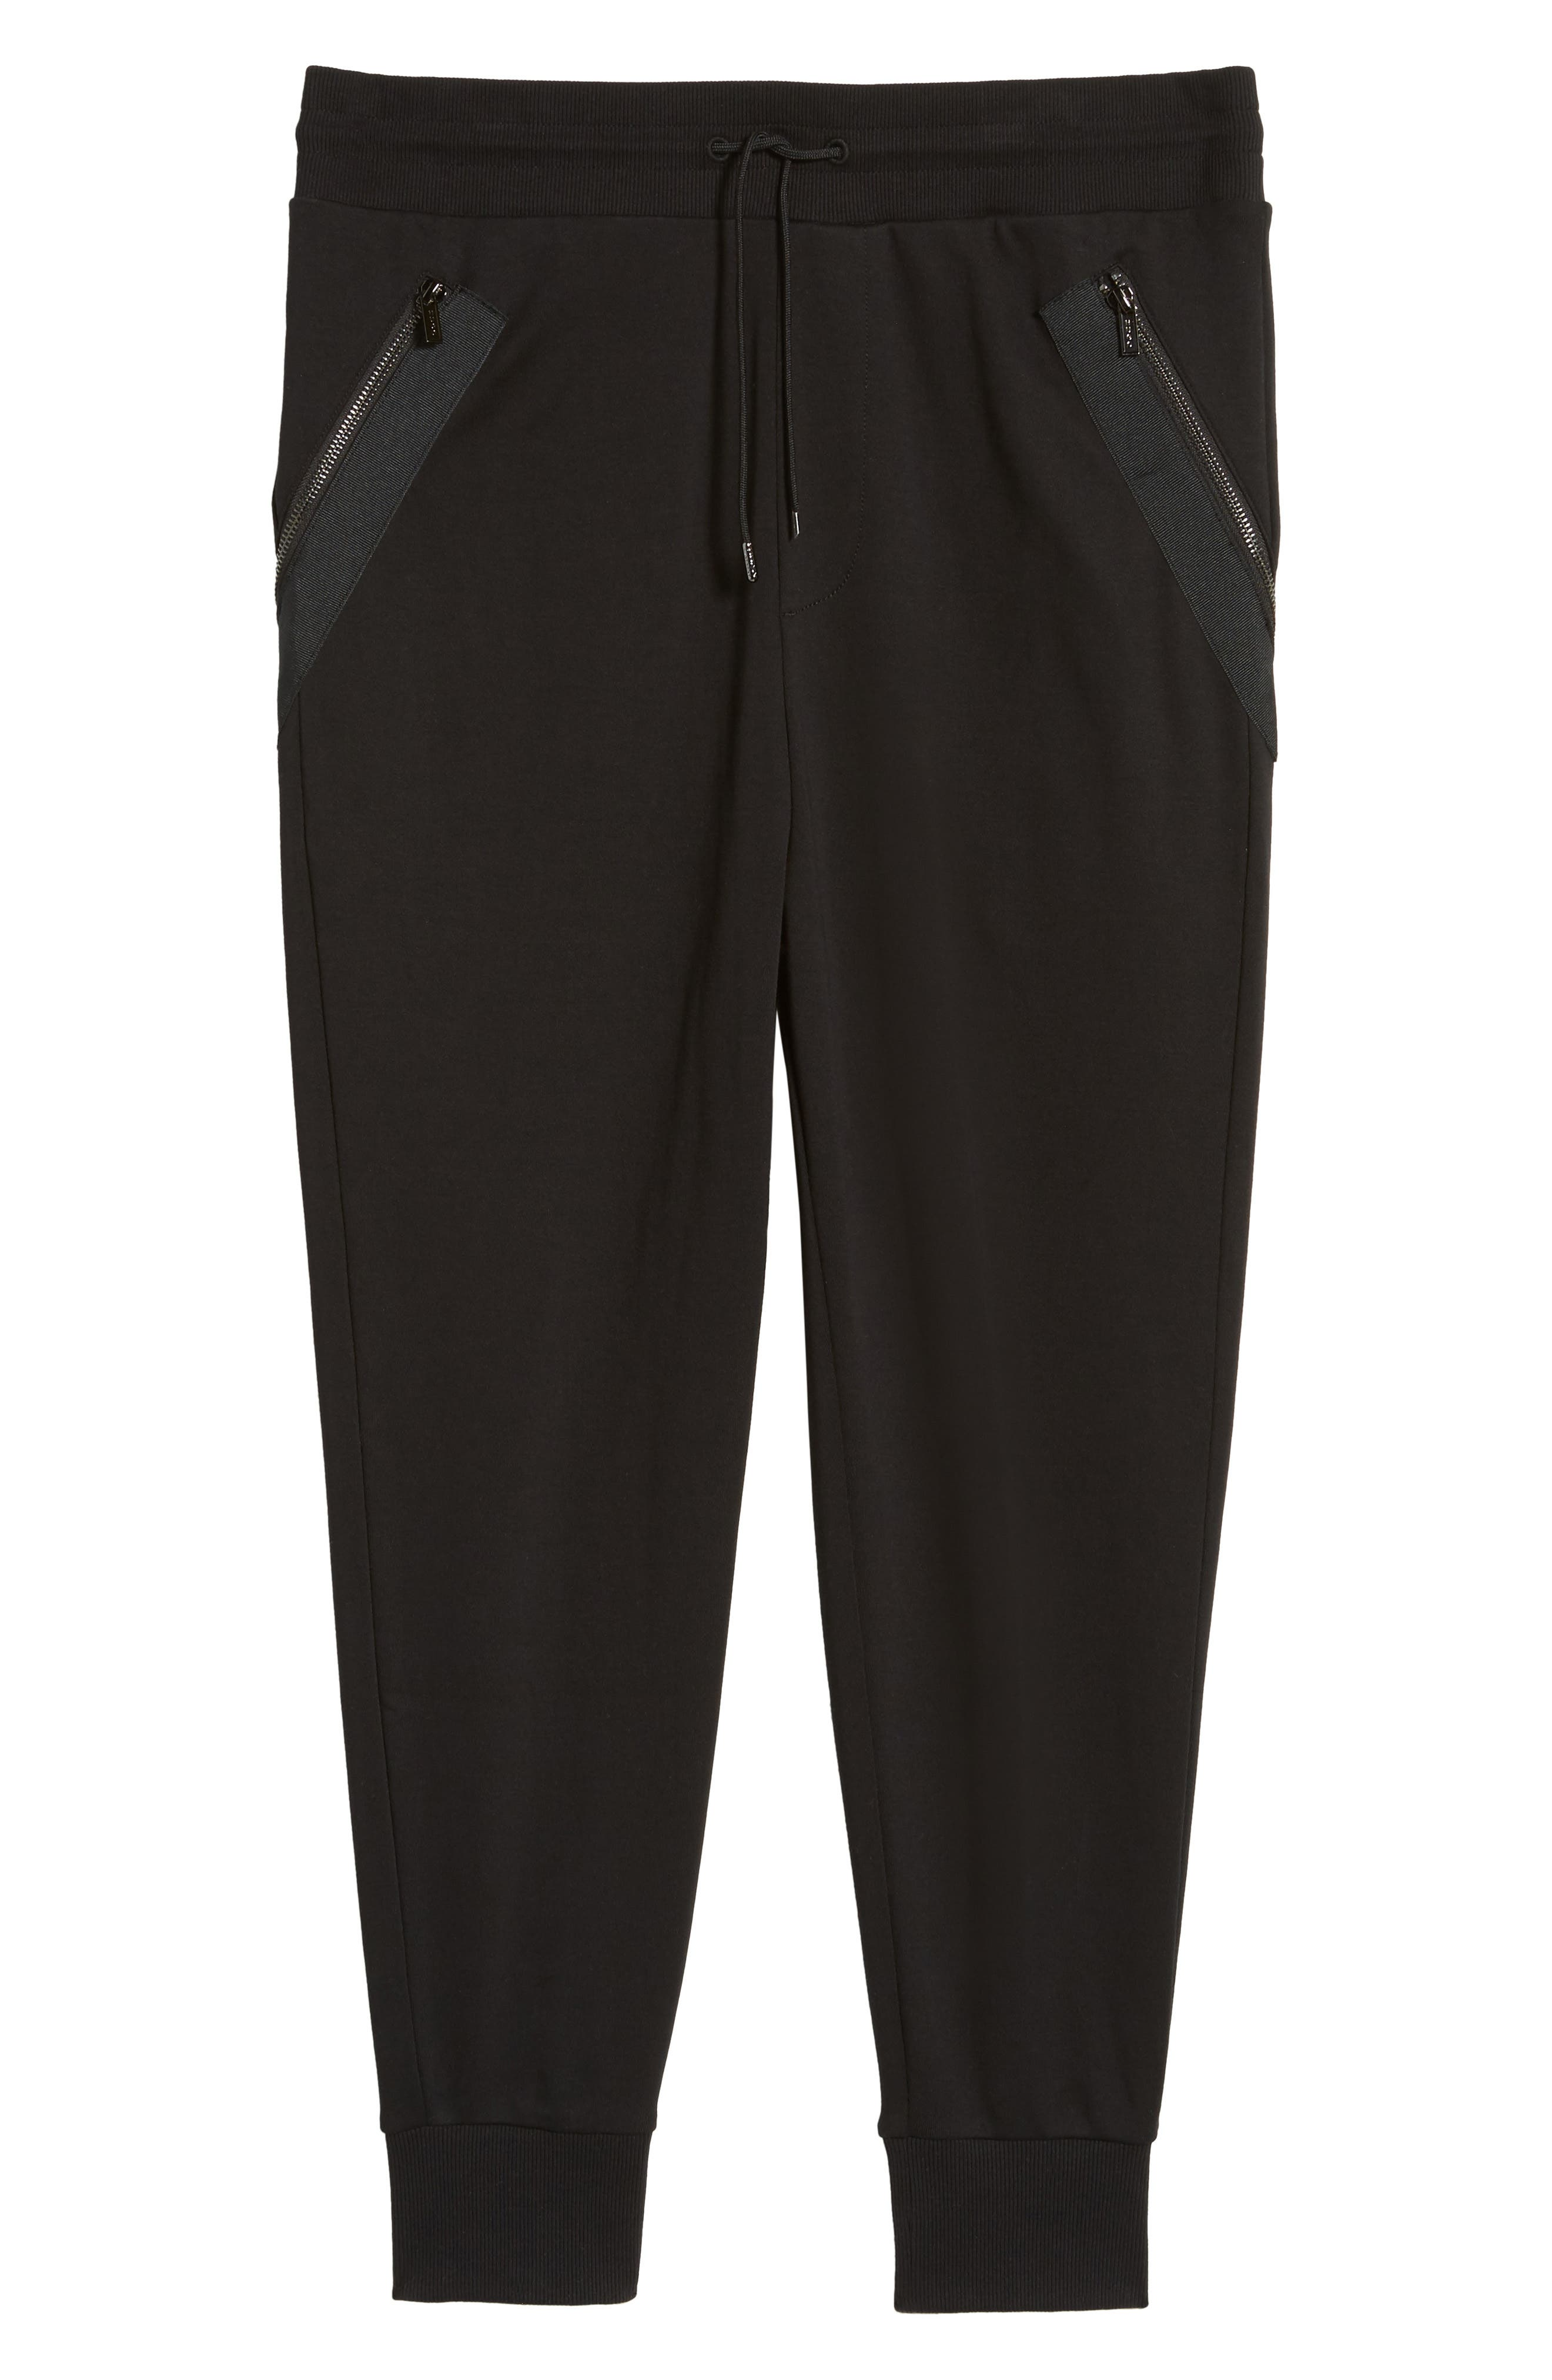 Daring Relaxed Fit Sweatpants,                             Alternate thumbnail 6, color,                             001